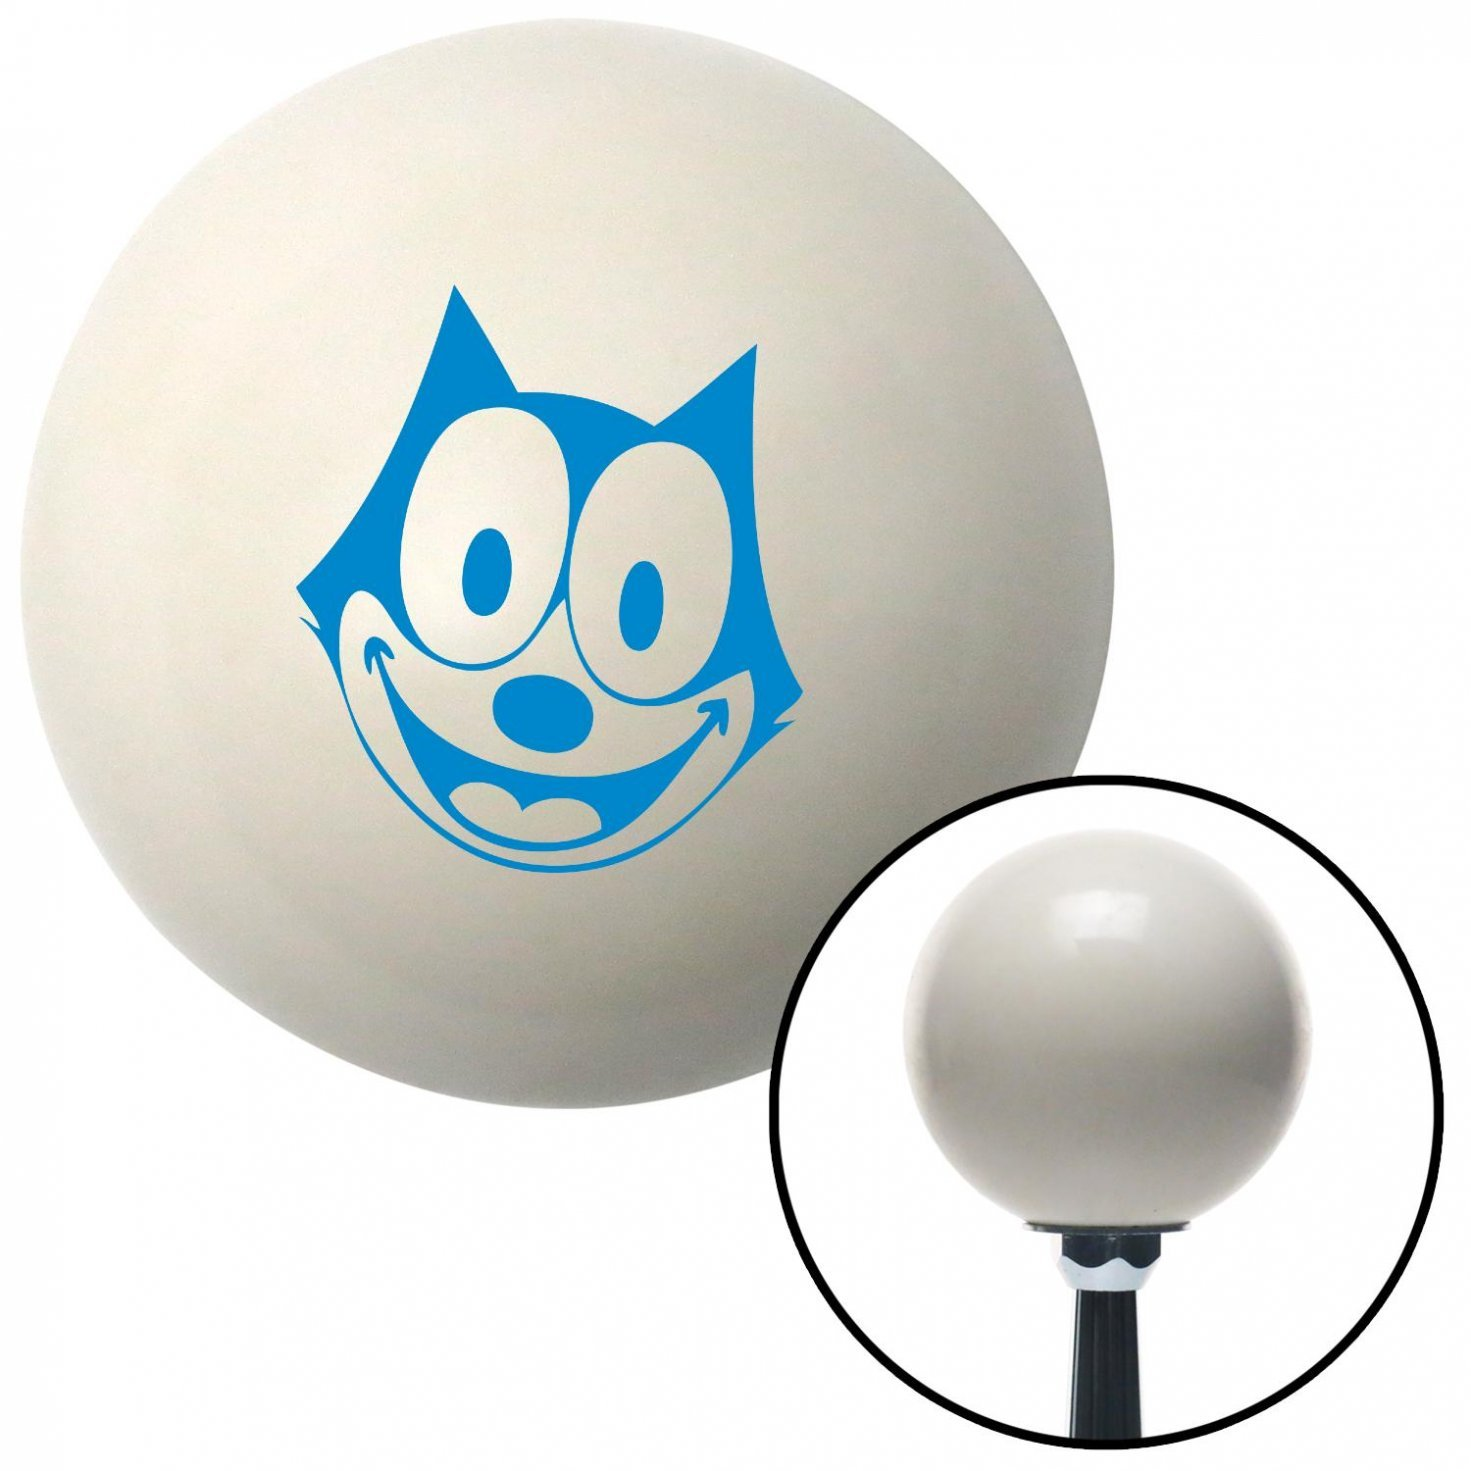 American Shifter 42194 Ivory Shift Knob with 16mm x 1.5 Insert Blue Felix The Cat Smiling